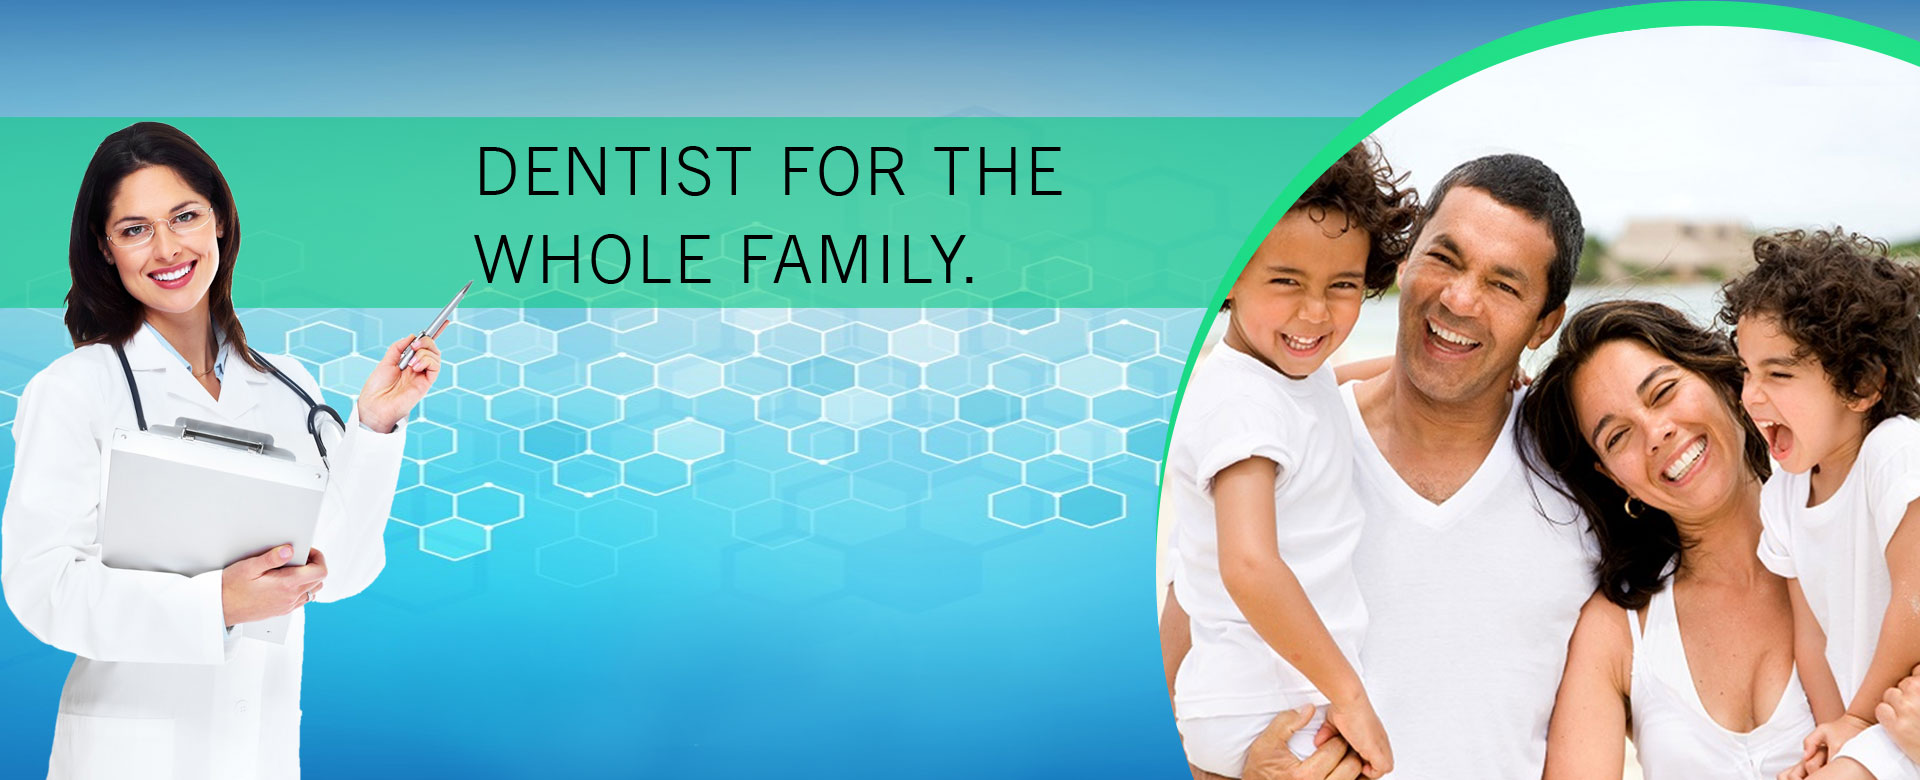 Dentist-For-The-Whole-Family